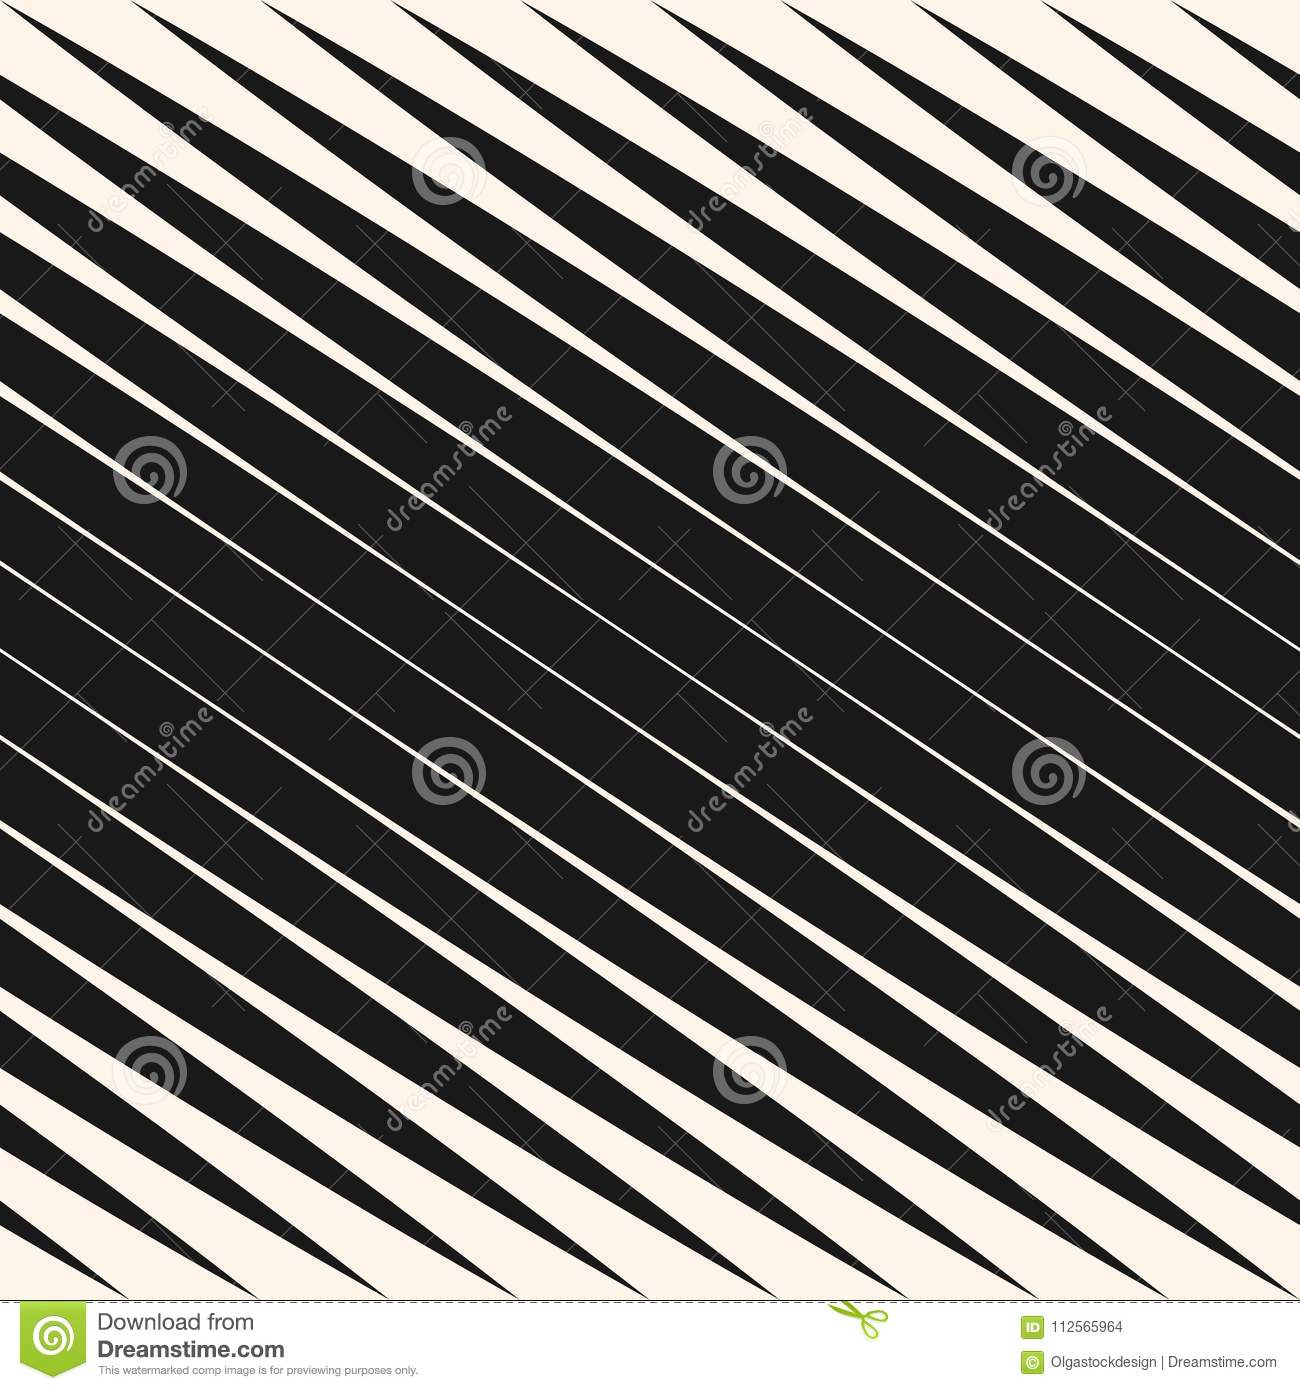 Diagonal halftone stripes seamless pattern, vector slanted parallel lines. Black and white design element